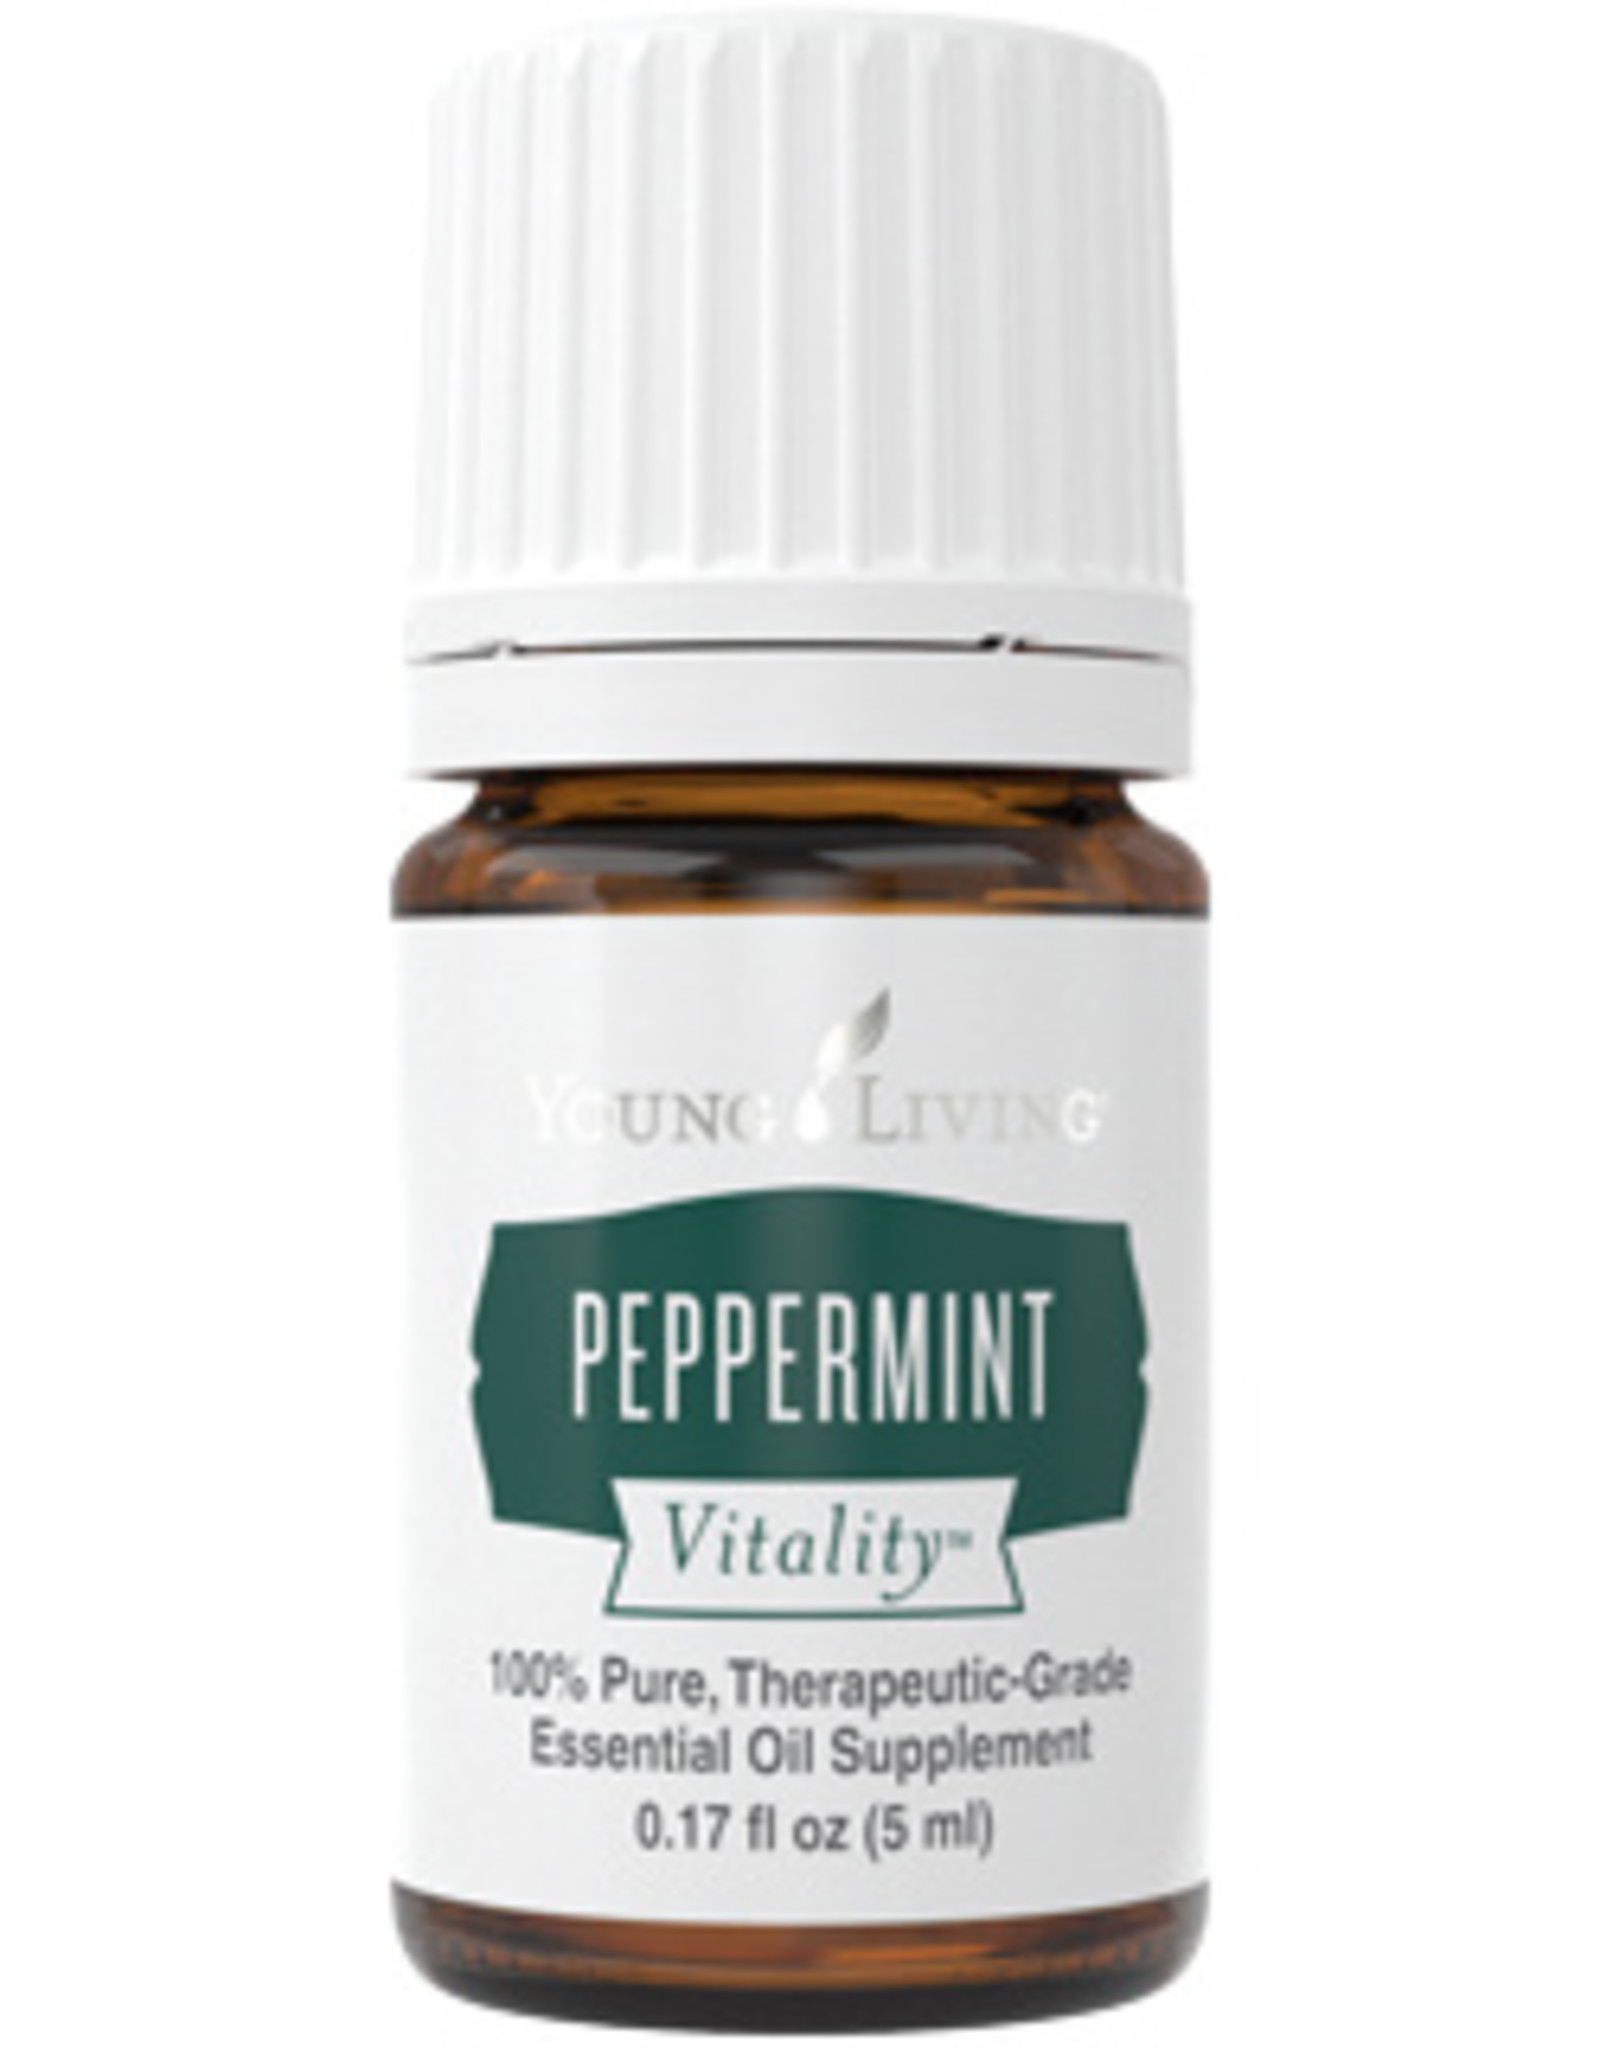 Young Living Peppermint Vitality - 5mL